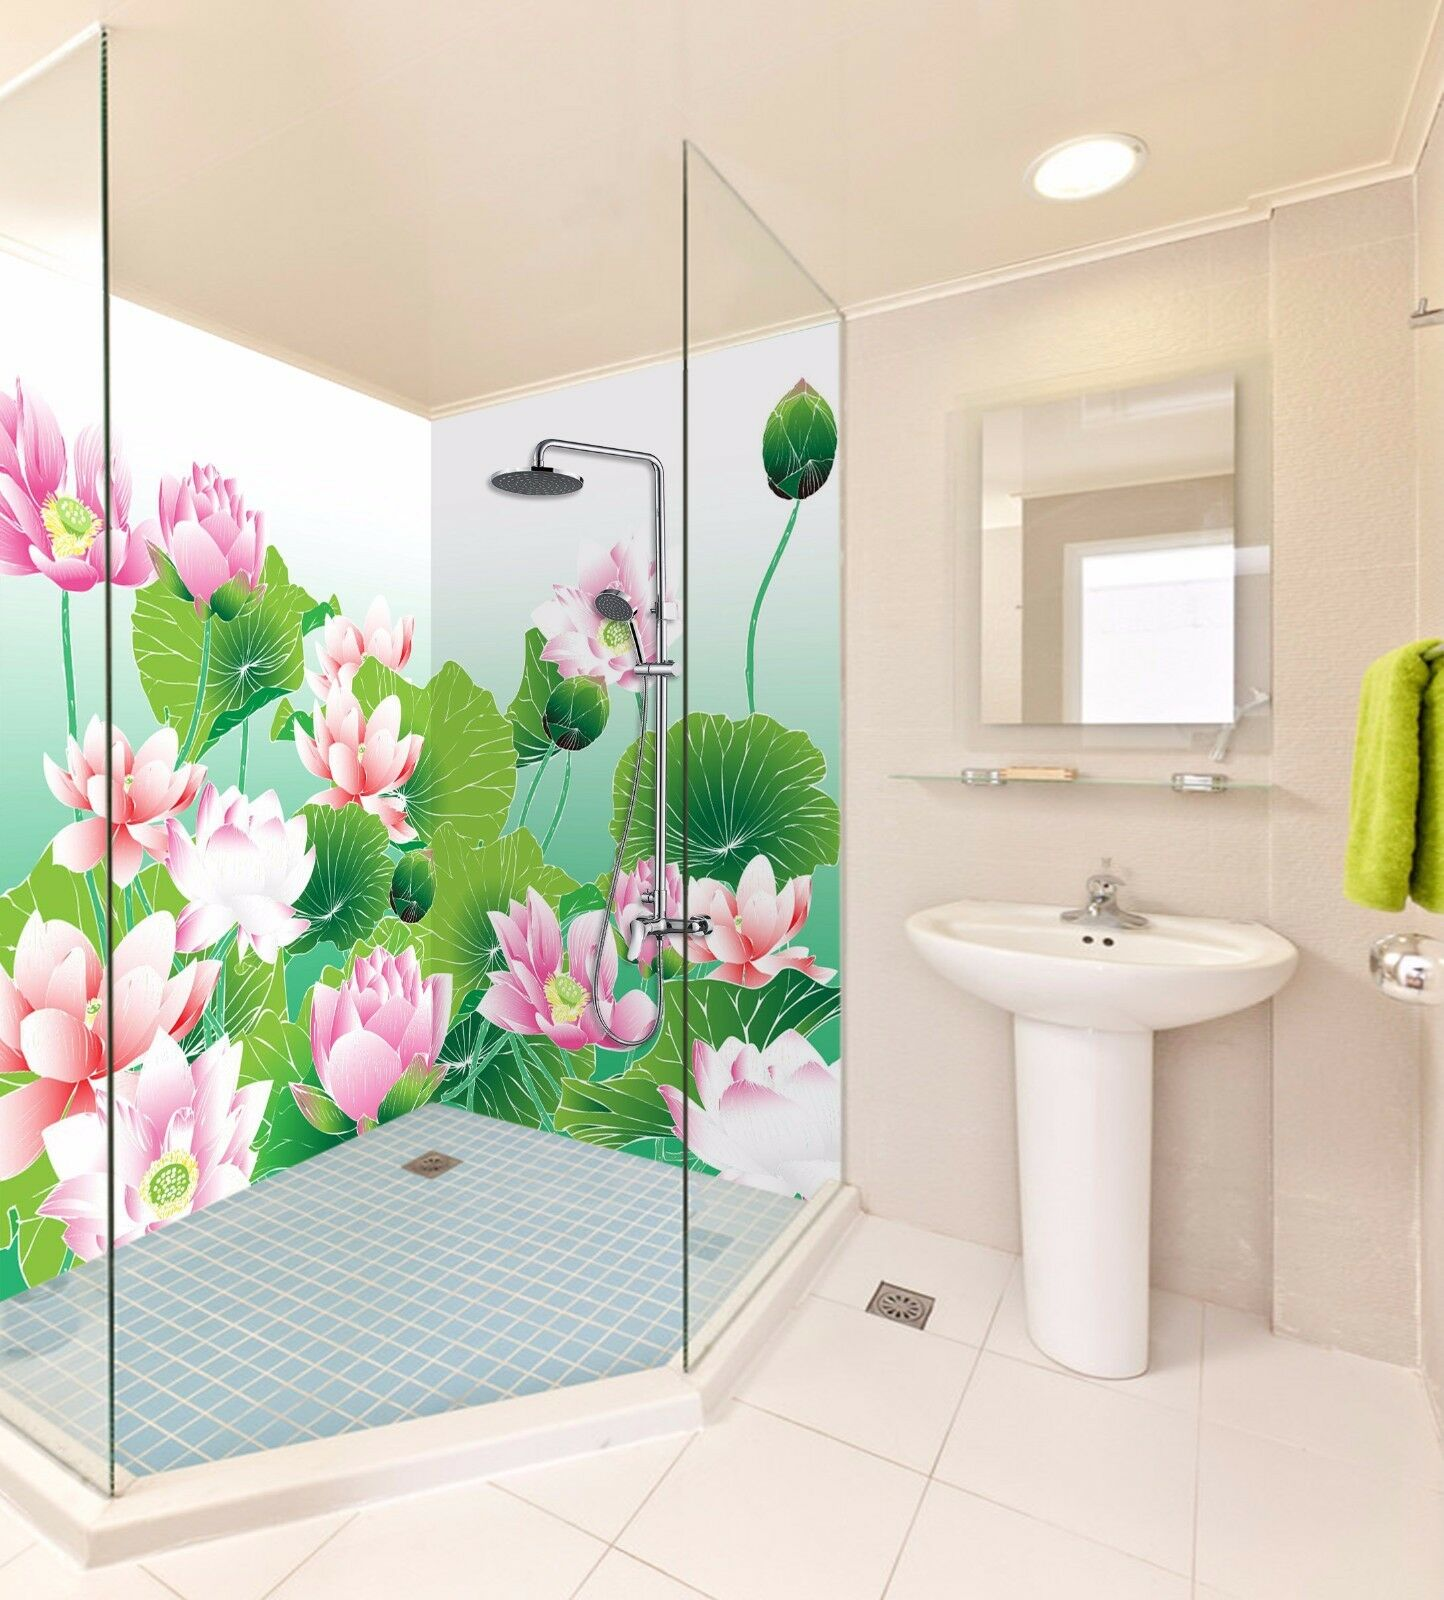 3D Pink Lotus 487 WallPaper Bathroom Print Decal Wall Deco AJ WALLPAPER AU